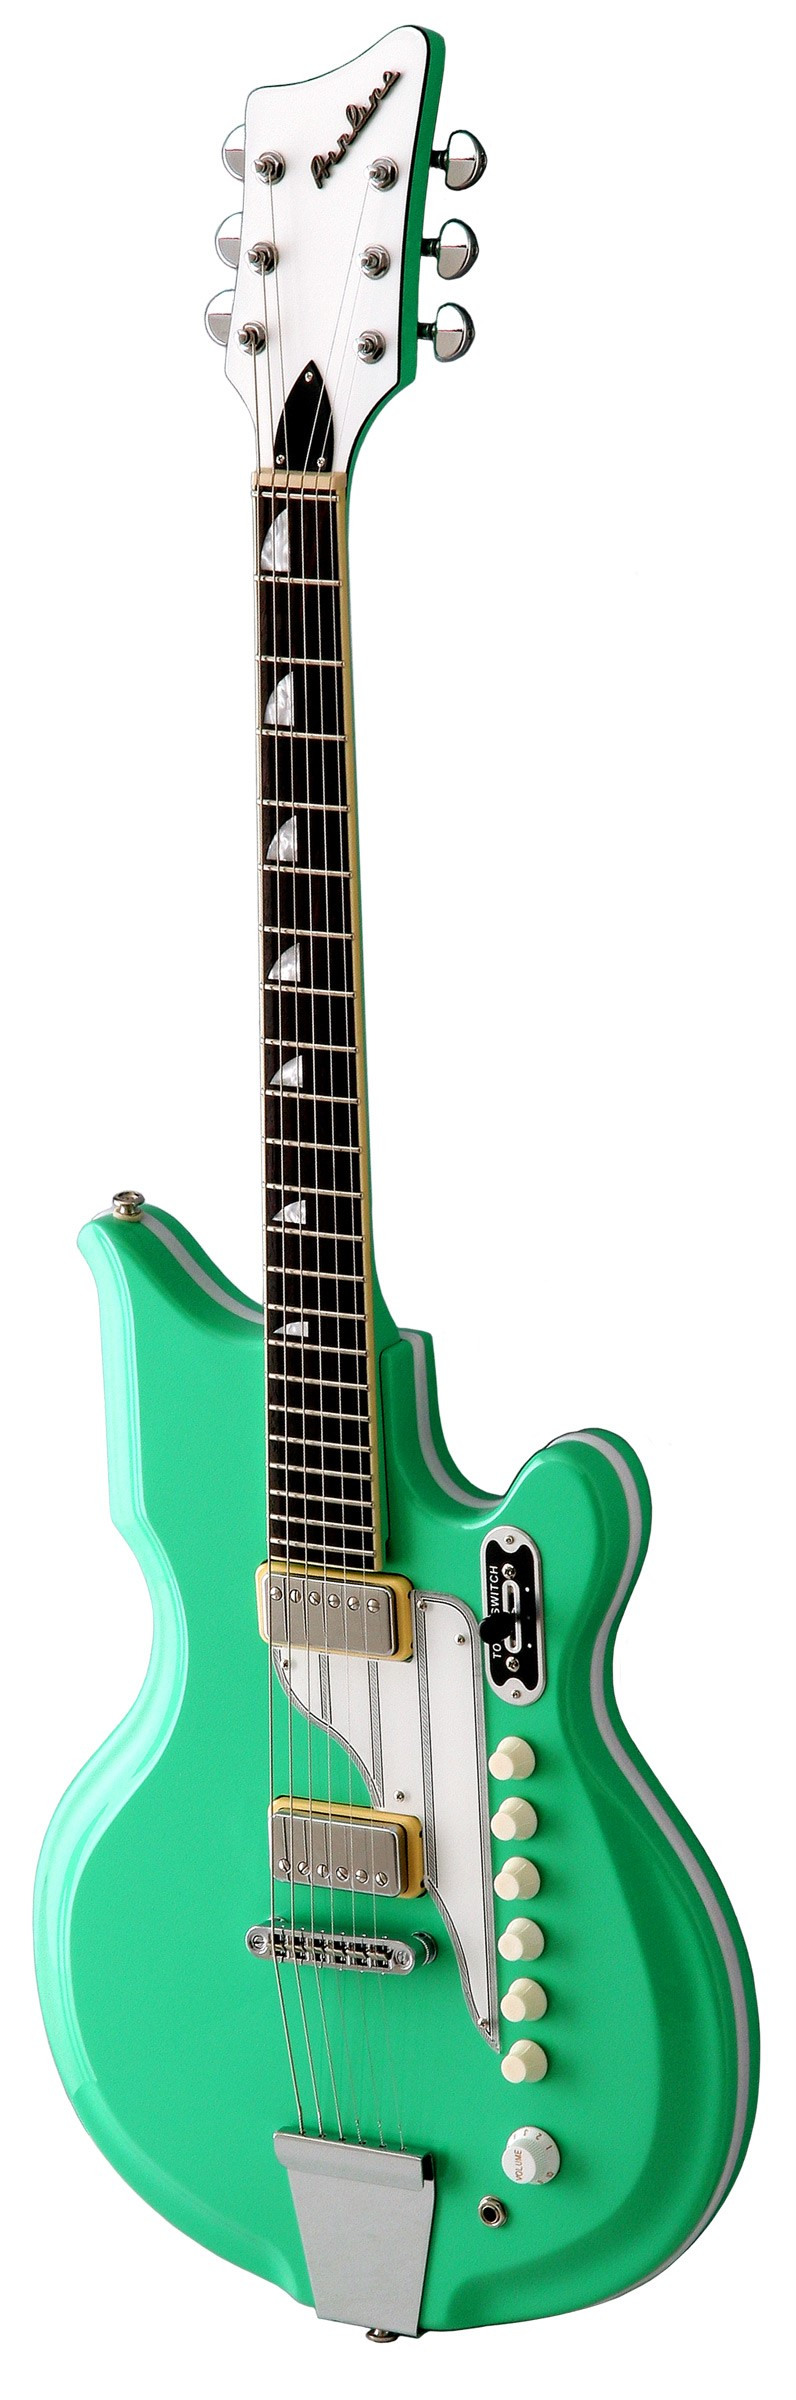 EASTWOOD AIRLINE 59 NEWPORT SEAFOAM GREEN